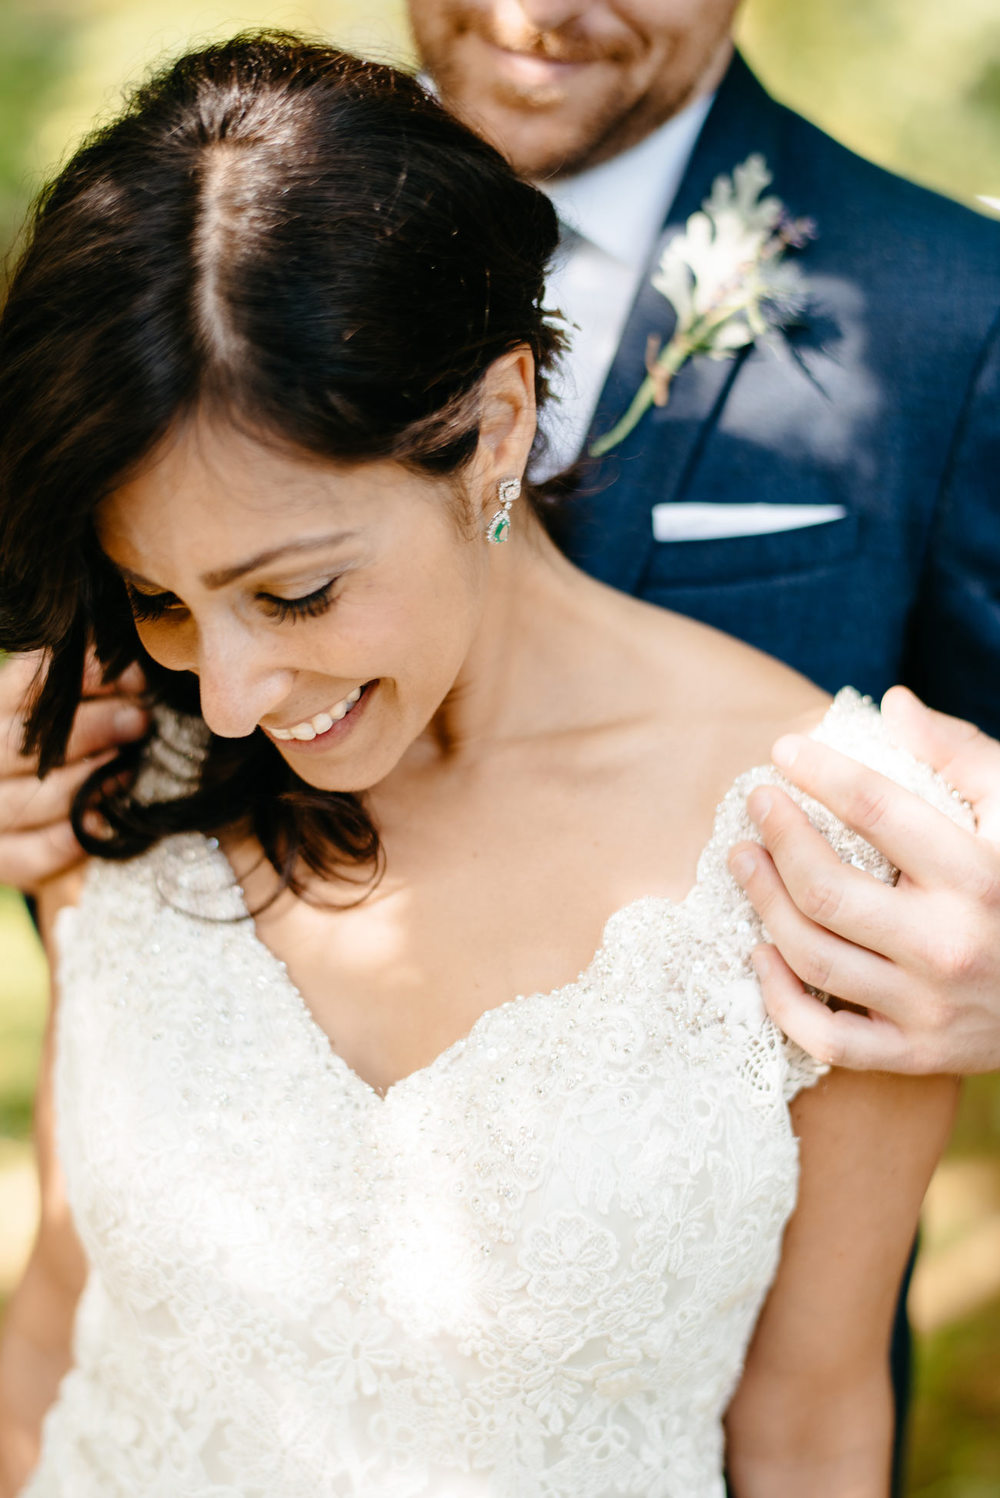 stunning bride and groom portrait at a private estate wedding creative bohemian wedding and bride inspiration eastern point yacht club